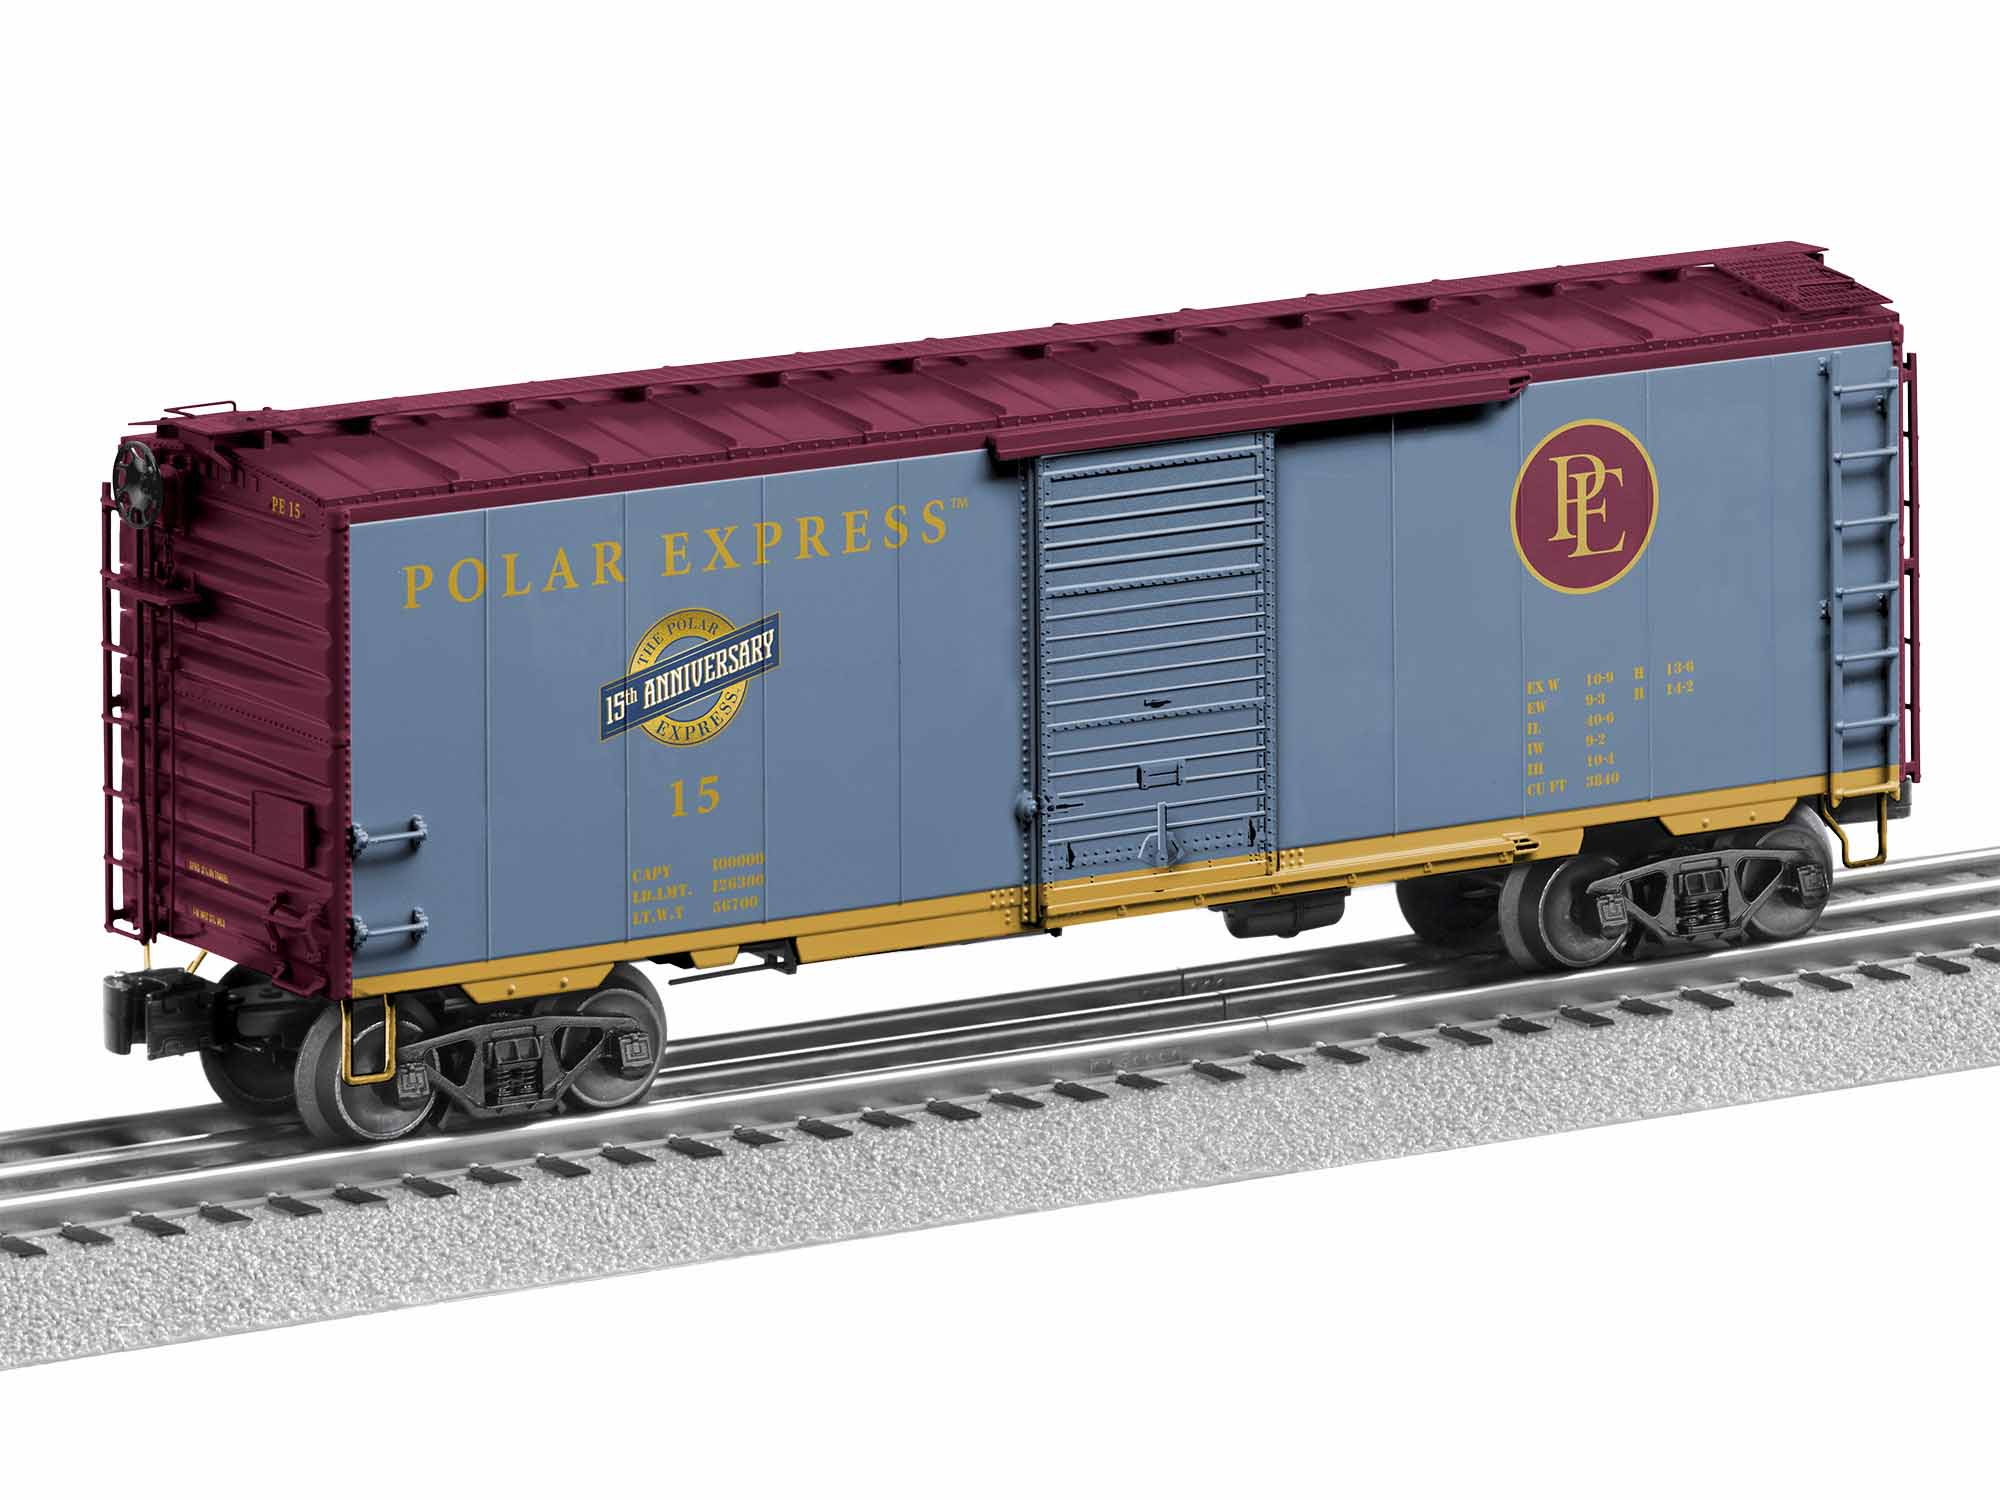 1926820 THE POLAR EXPRESS 15TH ANNIVERSARY BOXCAR #15